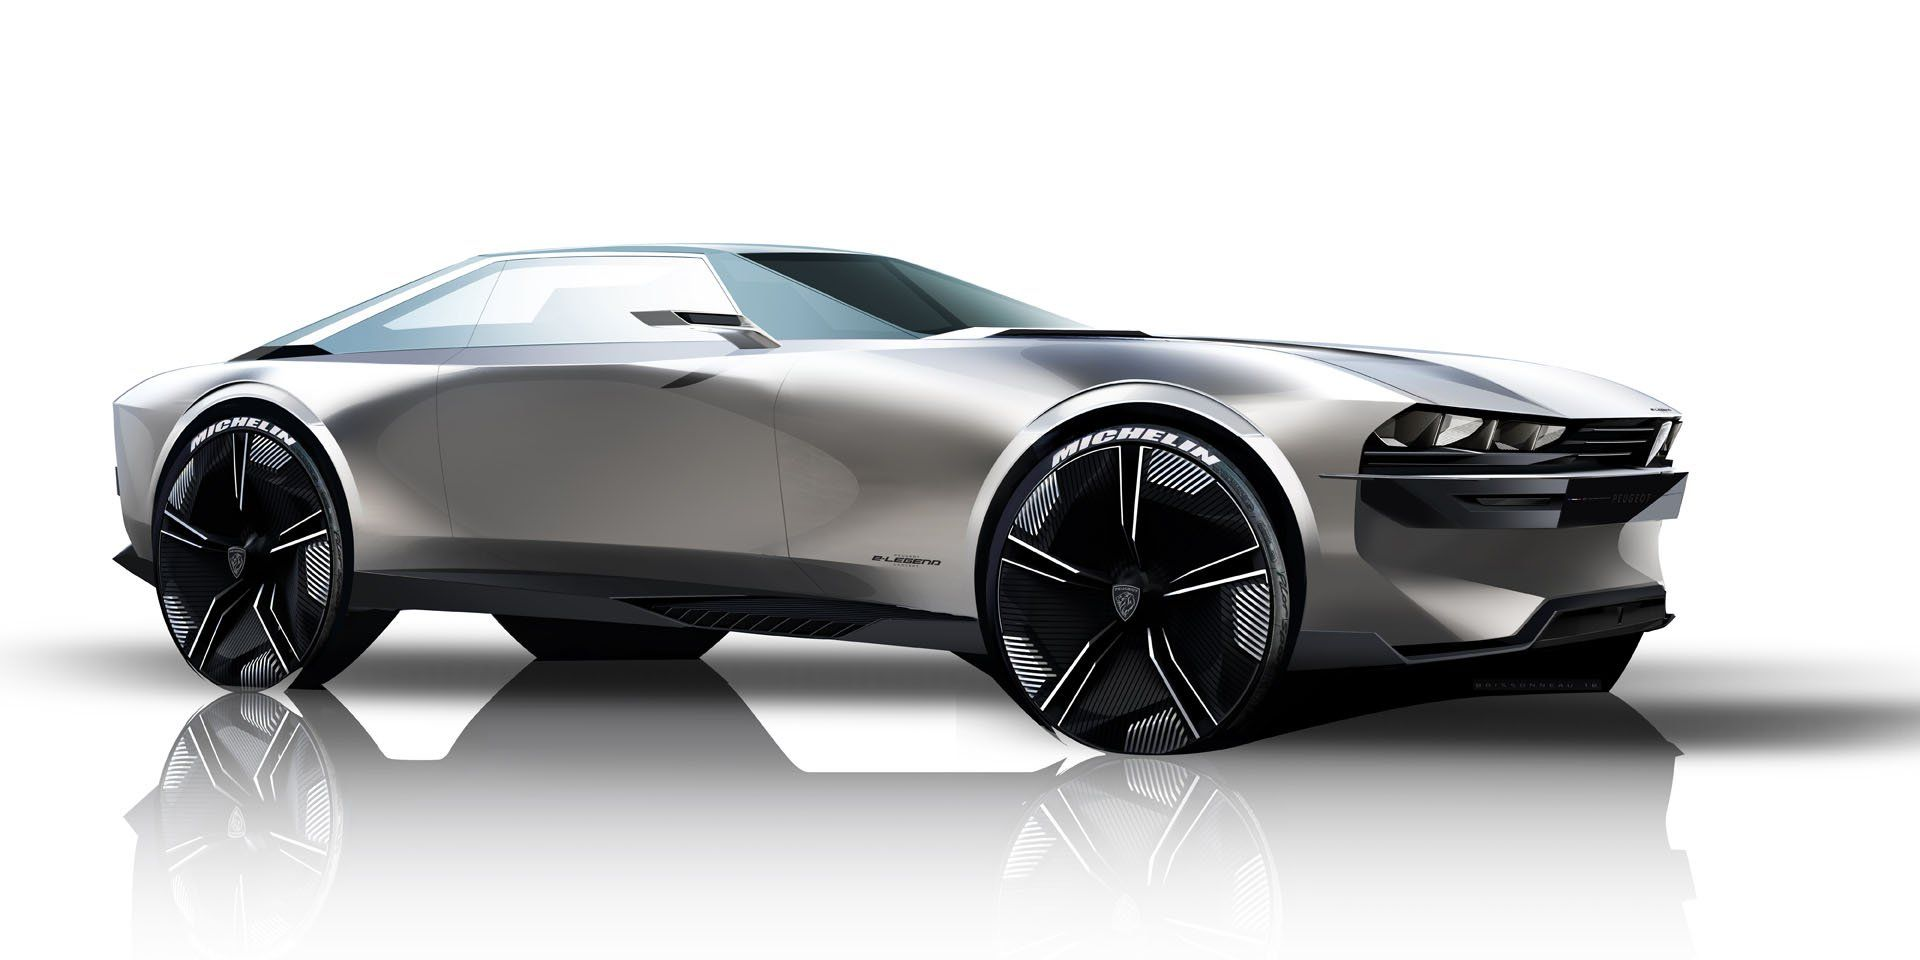 Garage Peugeot Paris Peugeot E Legend Concept Takes Retro Design Into The Future In